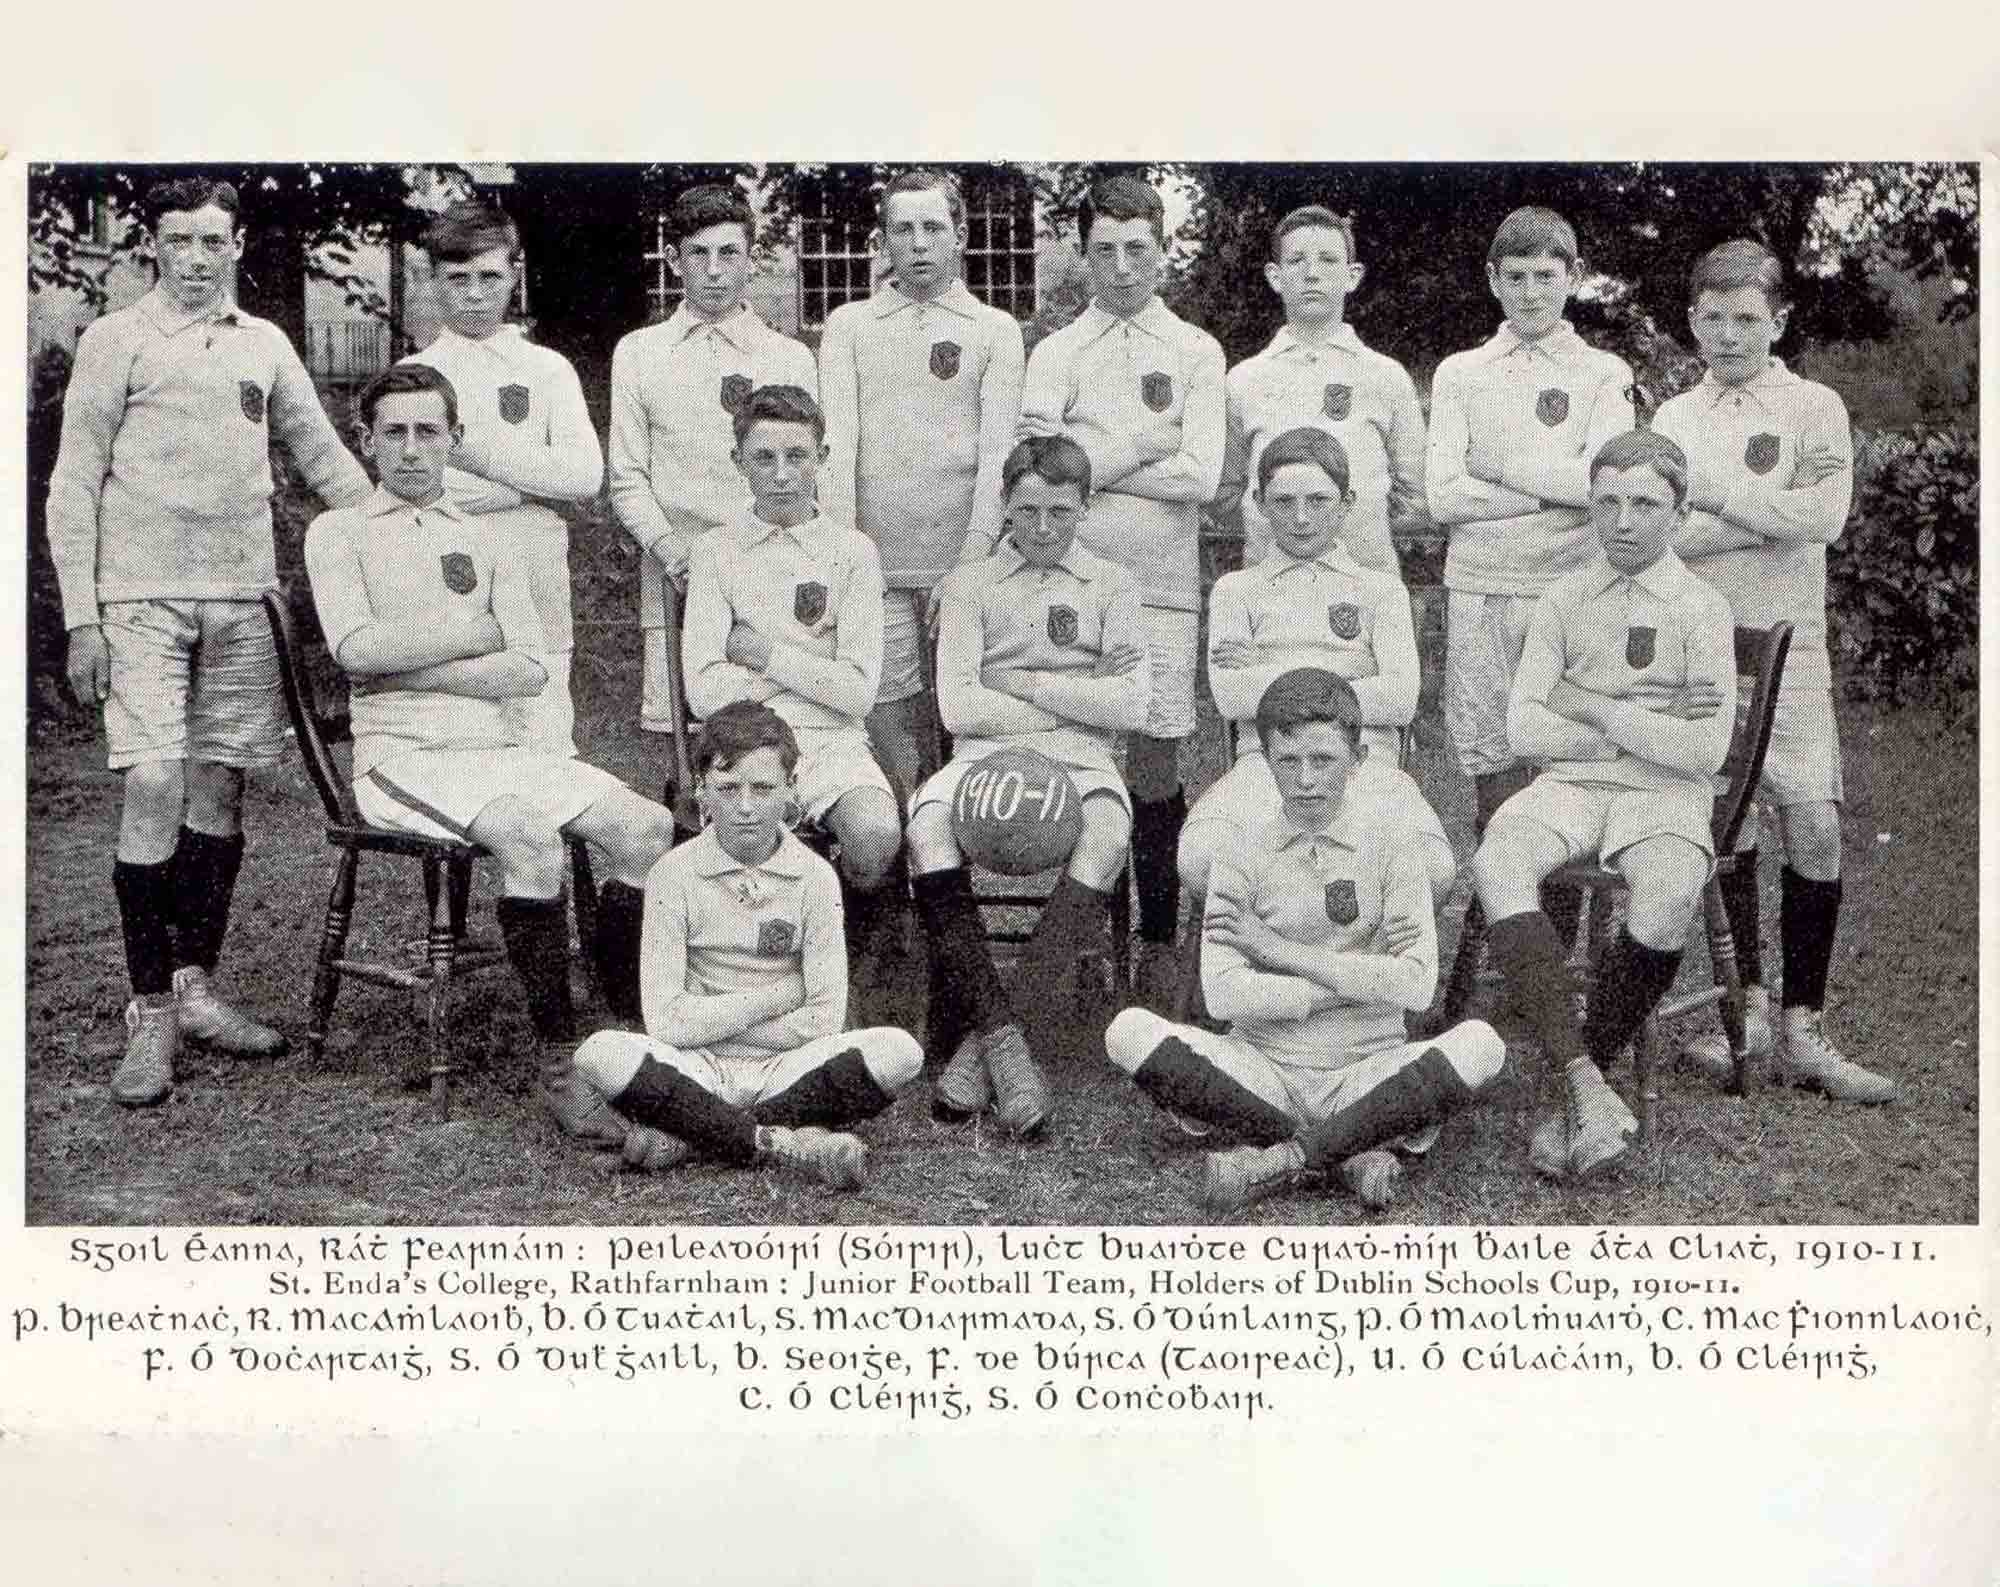 Junior Football Team and holders of the Dublin Schools Cup, 1909